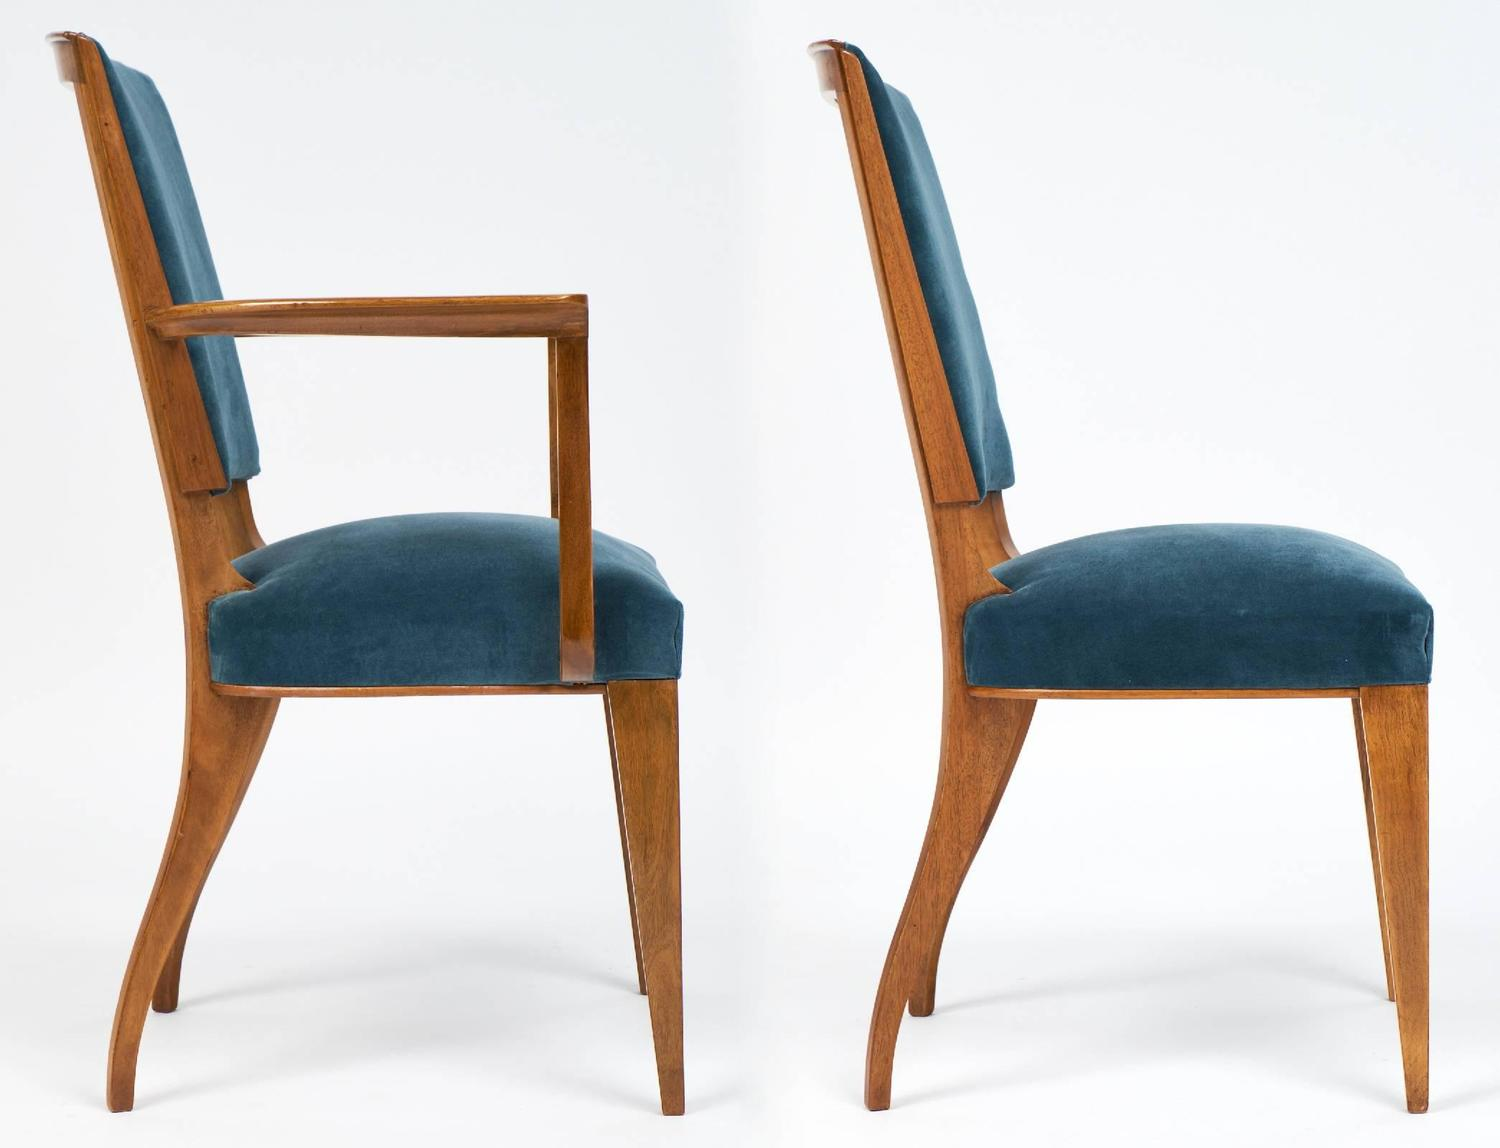 French Art Deco Set Of Cherrywood Dining Room Chairs For